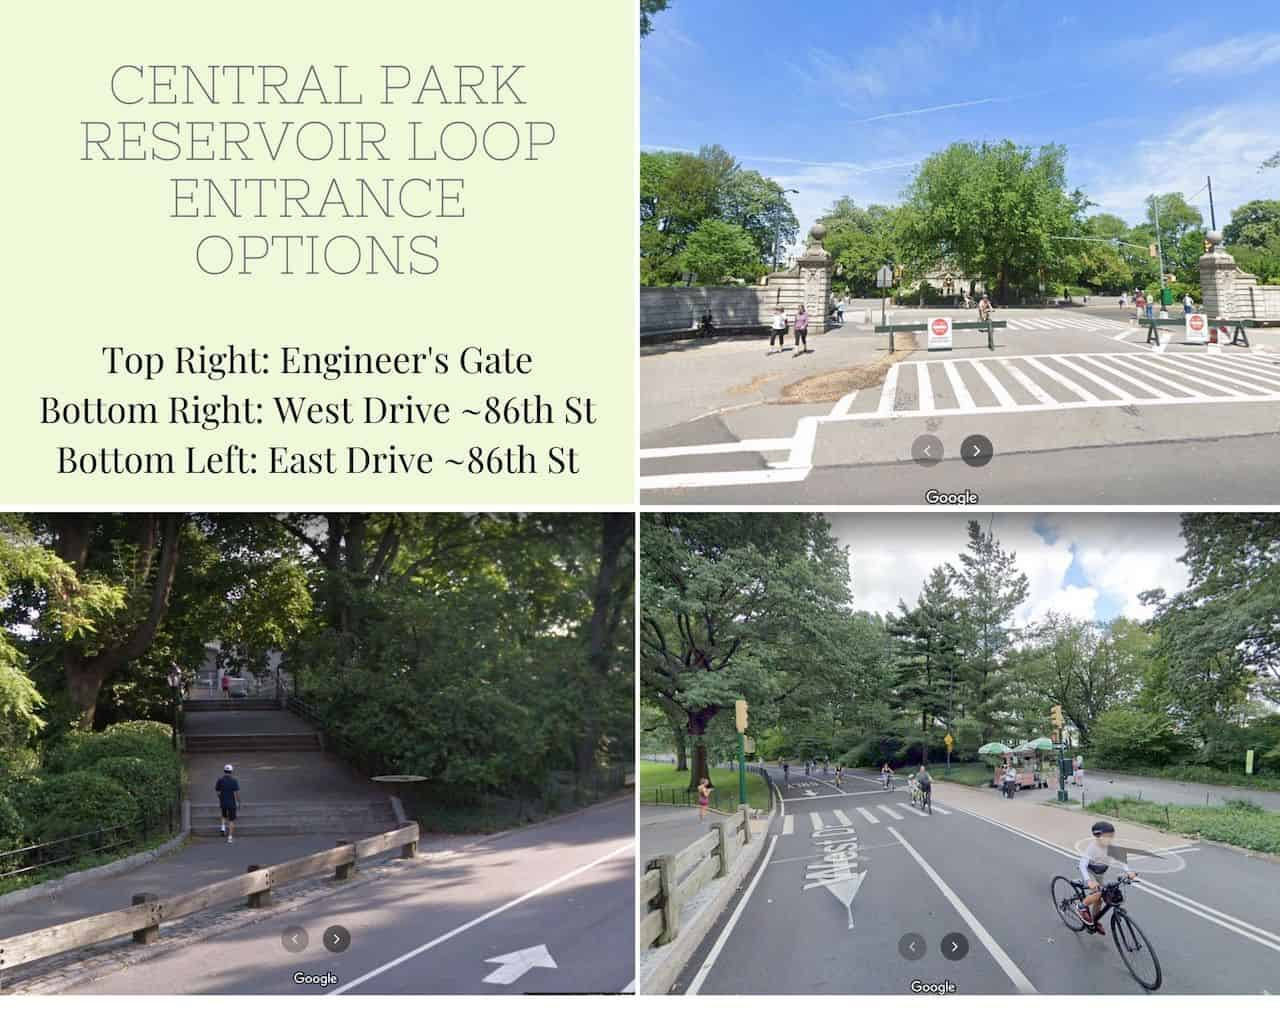 Central Park Reservoir Entrance